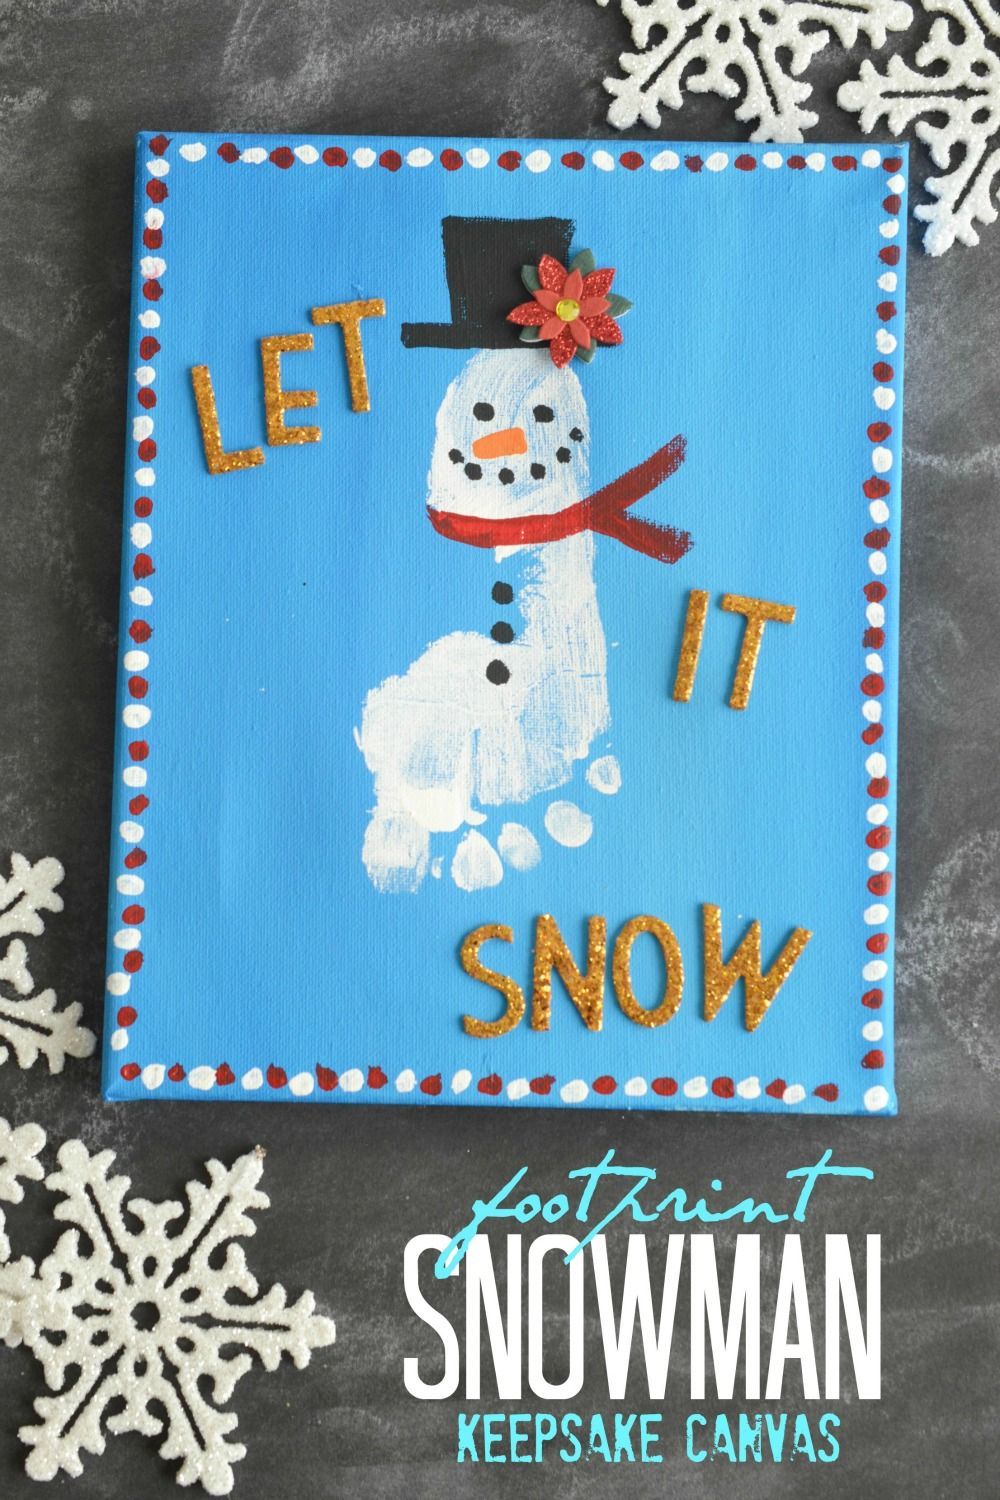 "Footprint Snowman Keepsake Canvas is part of Kids Crafts Canvas Friends - Looking for a kid friendly craft idea to beat the winter blues  Well, look no further because today's Footprint Snowman Keepsake Canvas Idea is not only a clever way to ""build a snowman"" with ease BUT it's also the perfect way to remember those once little feet forever! Enjoy ""building"" your own snowy friend with … Continued"